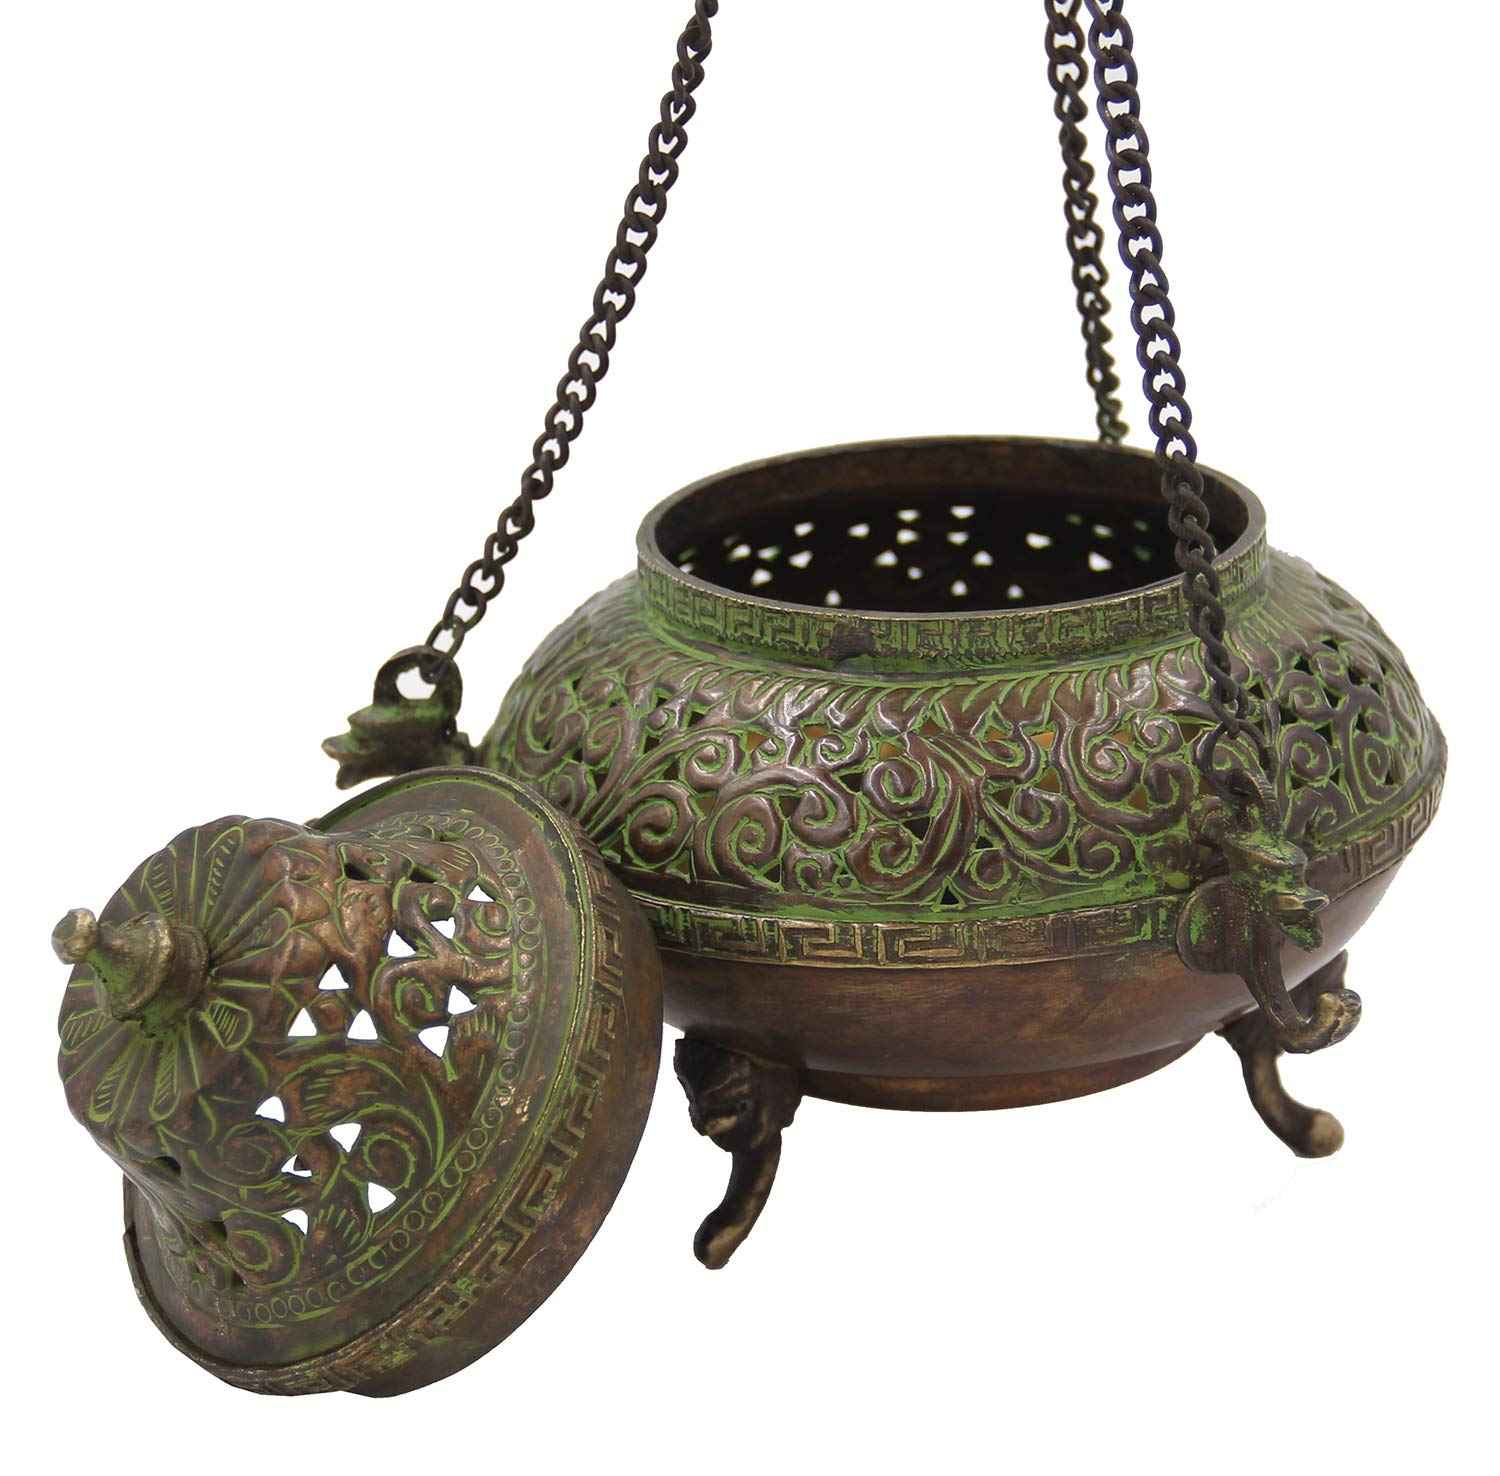 DharmaObjects Tibetan Traditional Hanging Incense Burner Copper (5.5 x 4.5 x 4.5 Inches, Hanging 7) by DharmaObjects (Image #2)